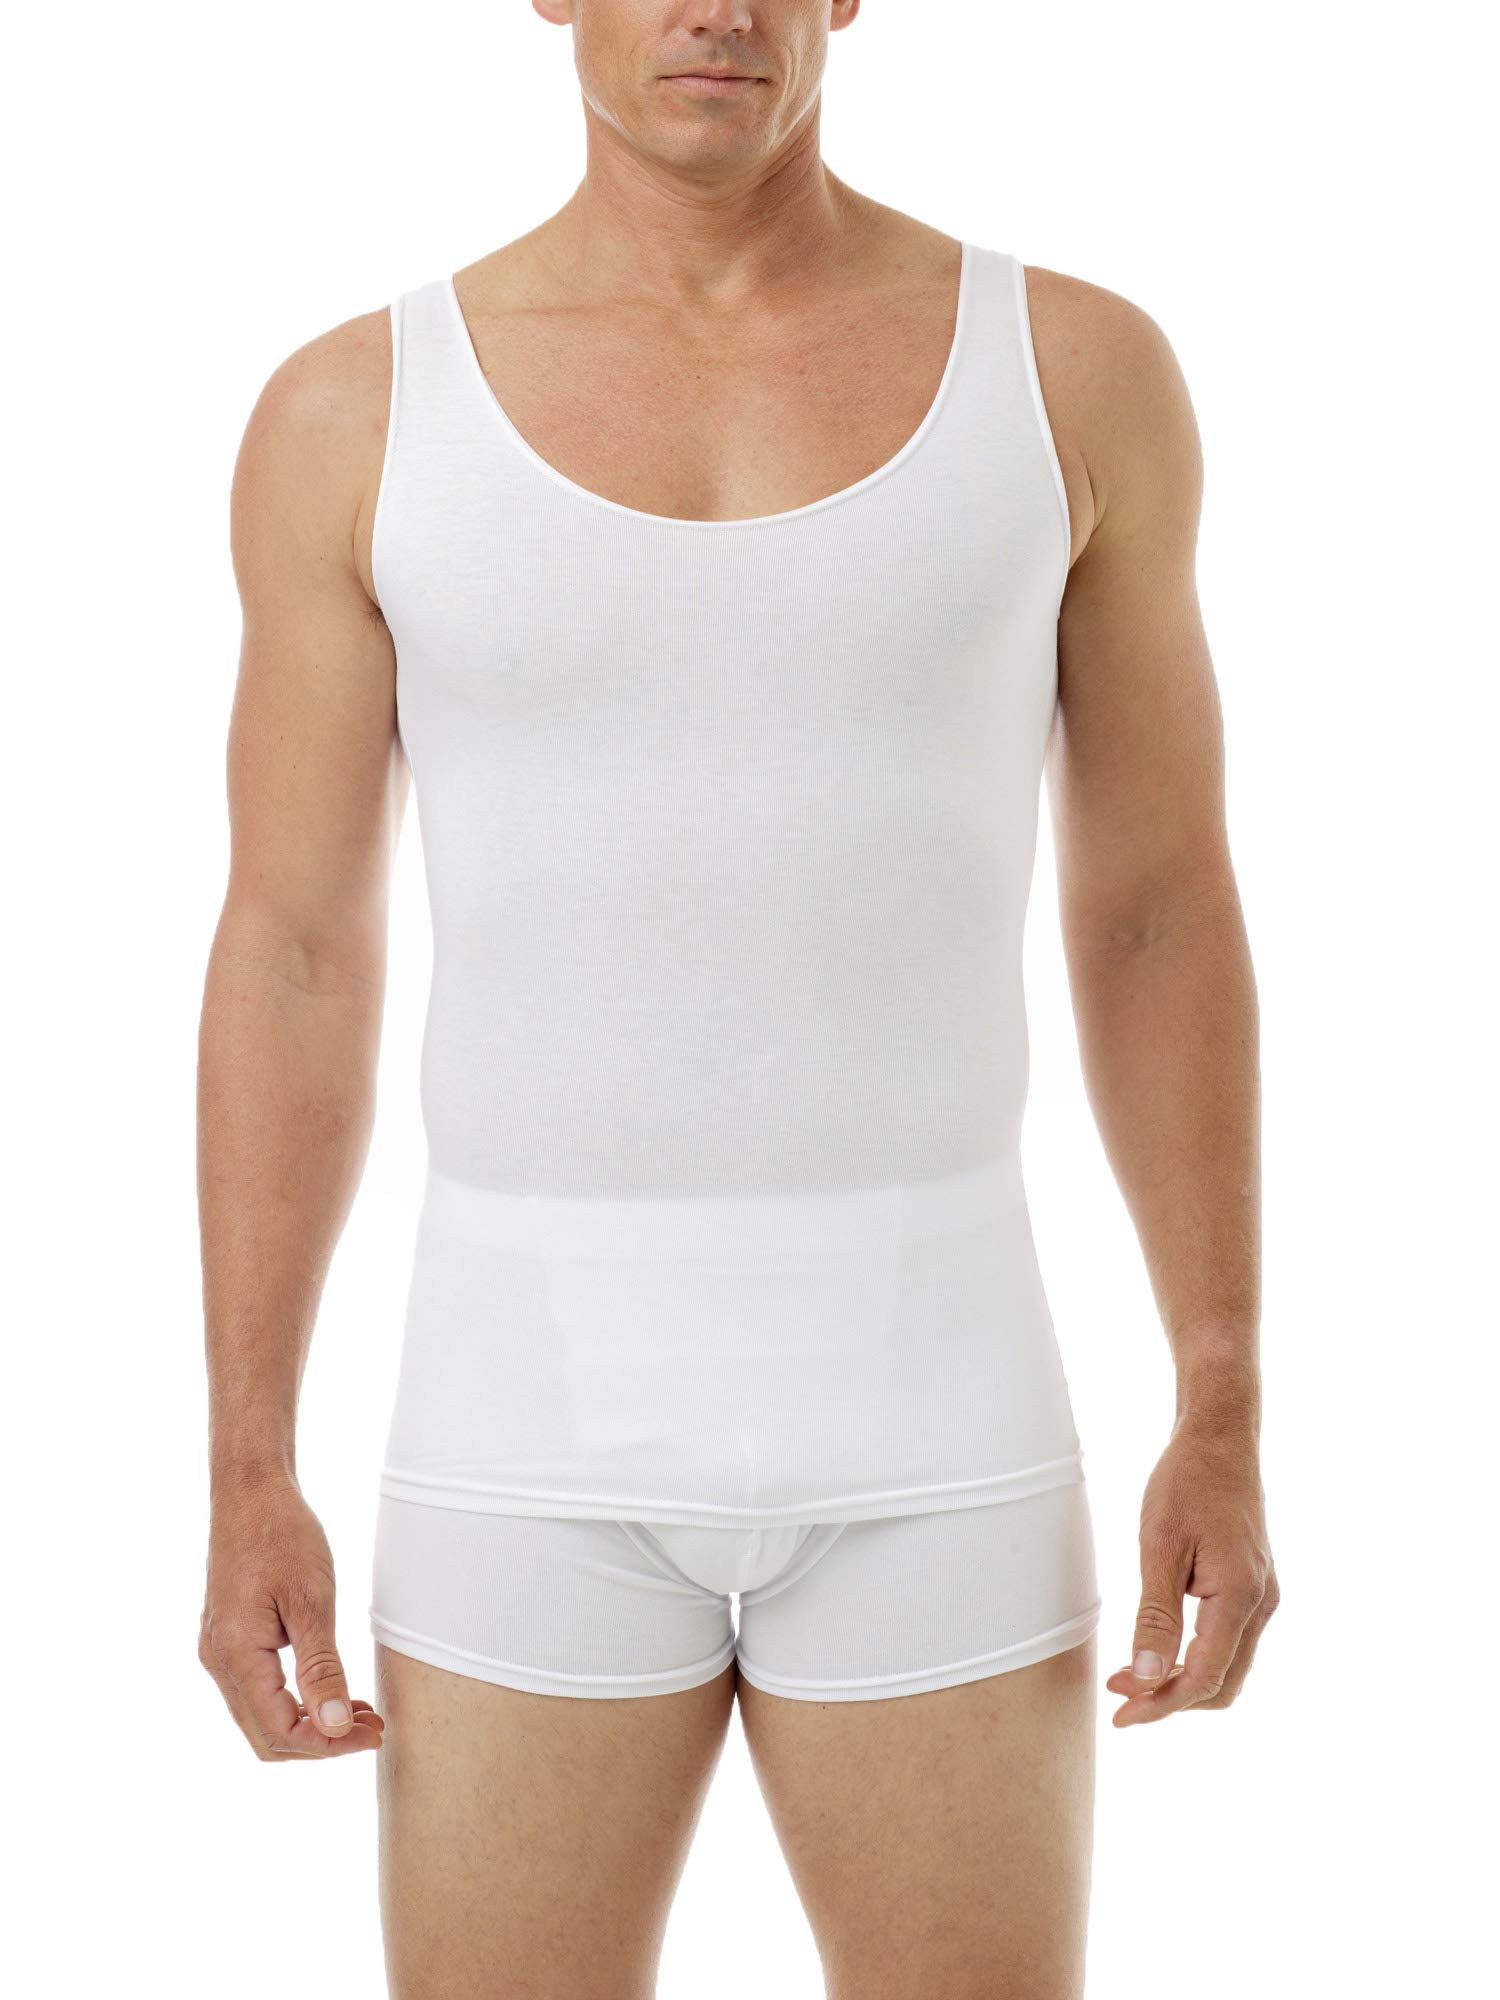 Underworks Mens Cotton Spandex Compression Tank 3-Pack, Large, White by Underworks (Image #1)